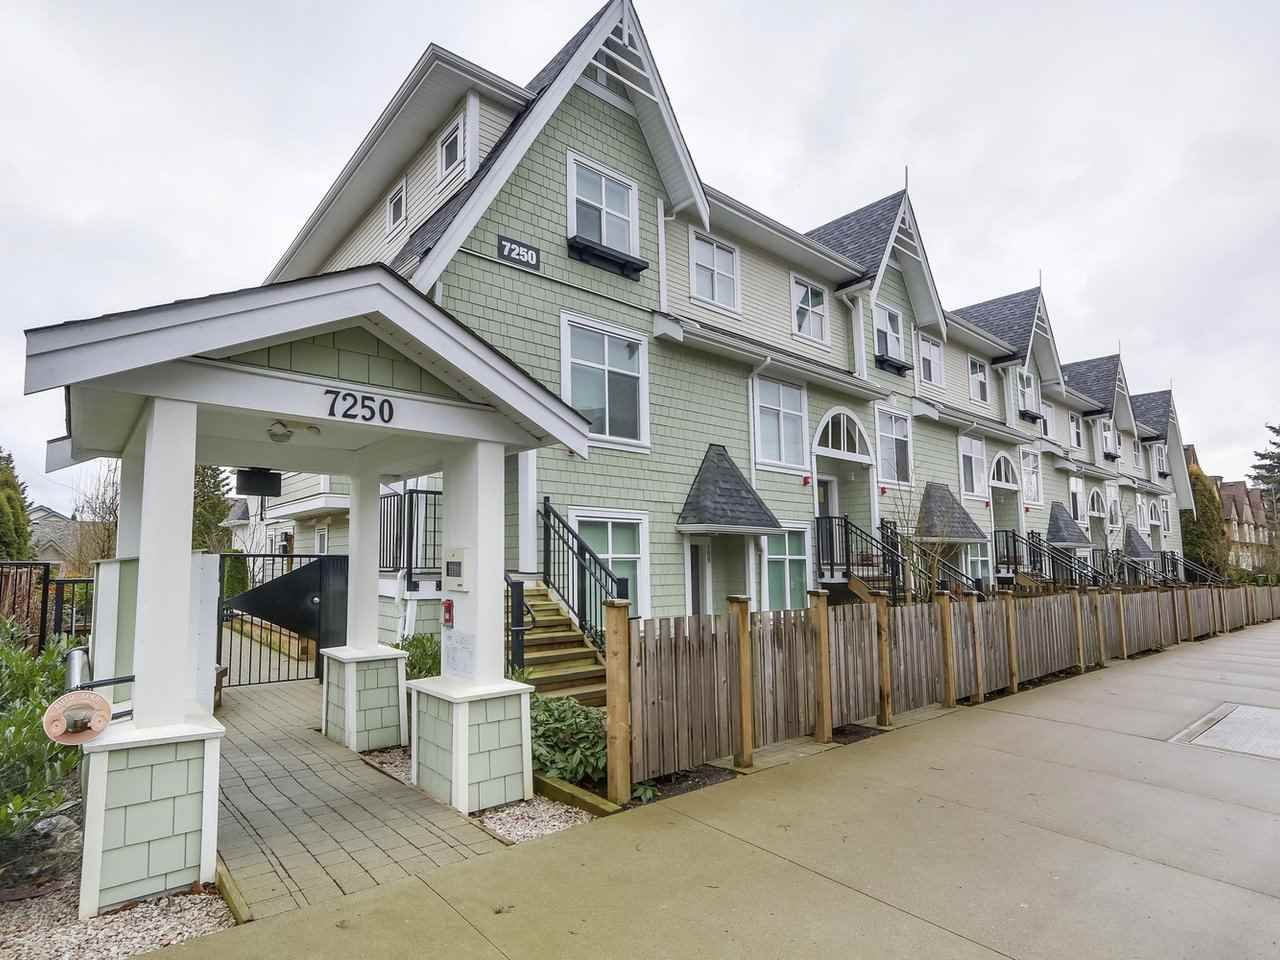 """Main Photo: 120 7250 18TH Avenue in Burnaby: Edmonds BE Townhouse for sale in """"IVORY MEWS"""" (Burnaby East)  : MLS®# R2360183"""